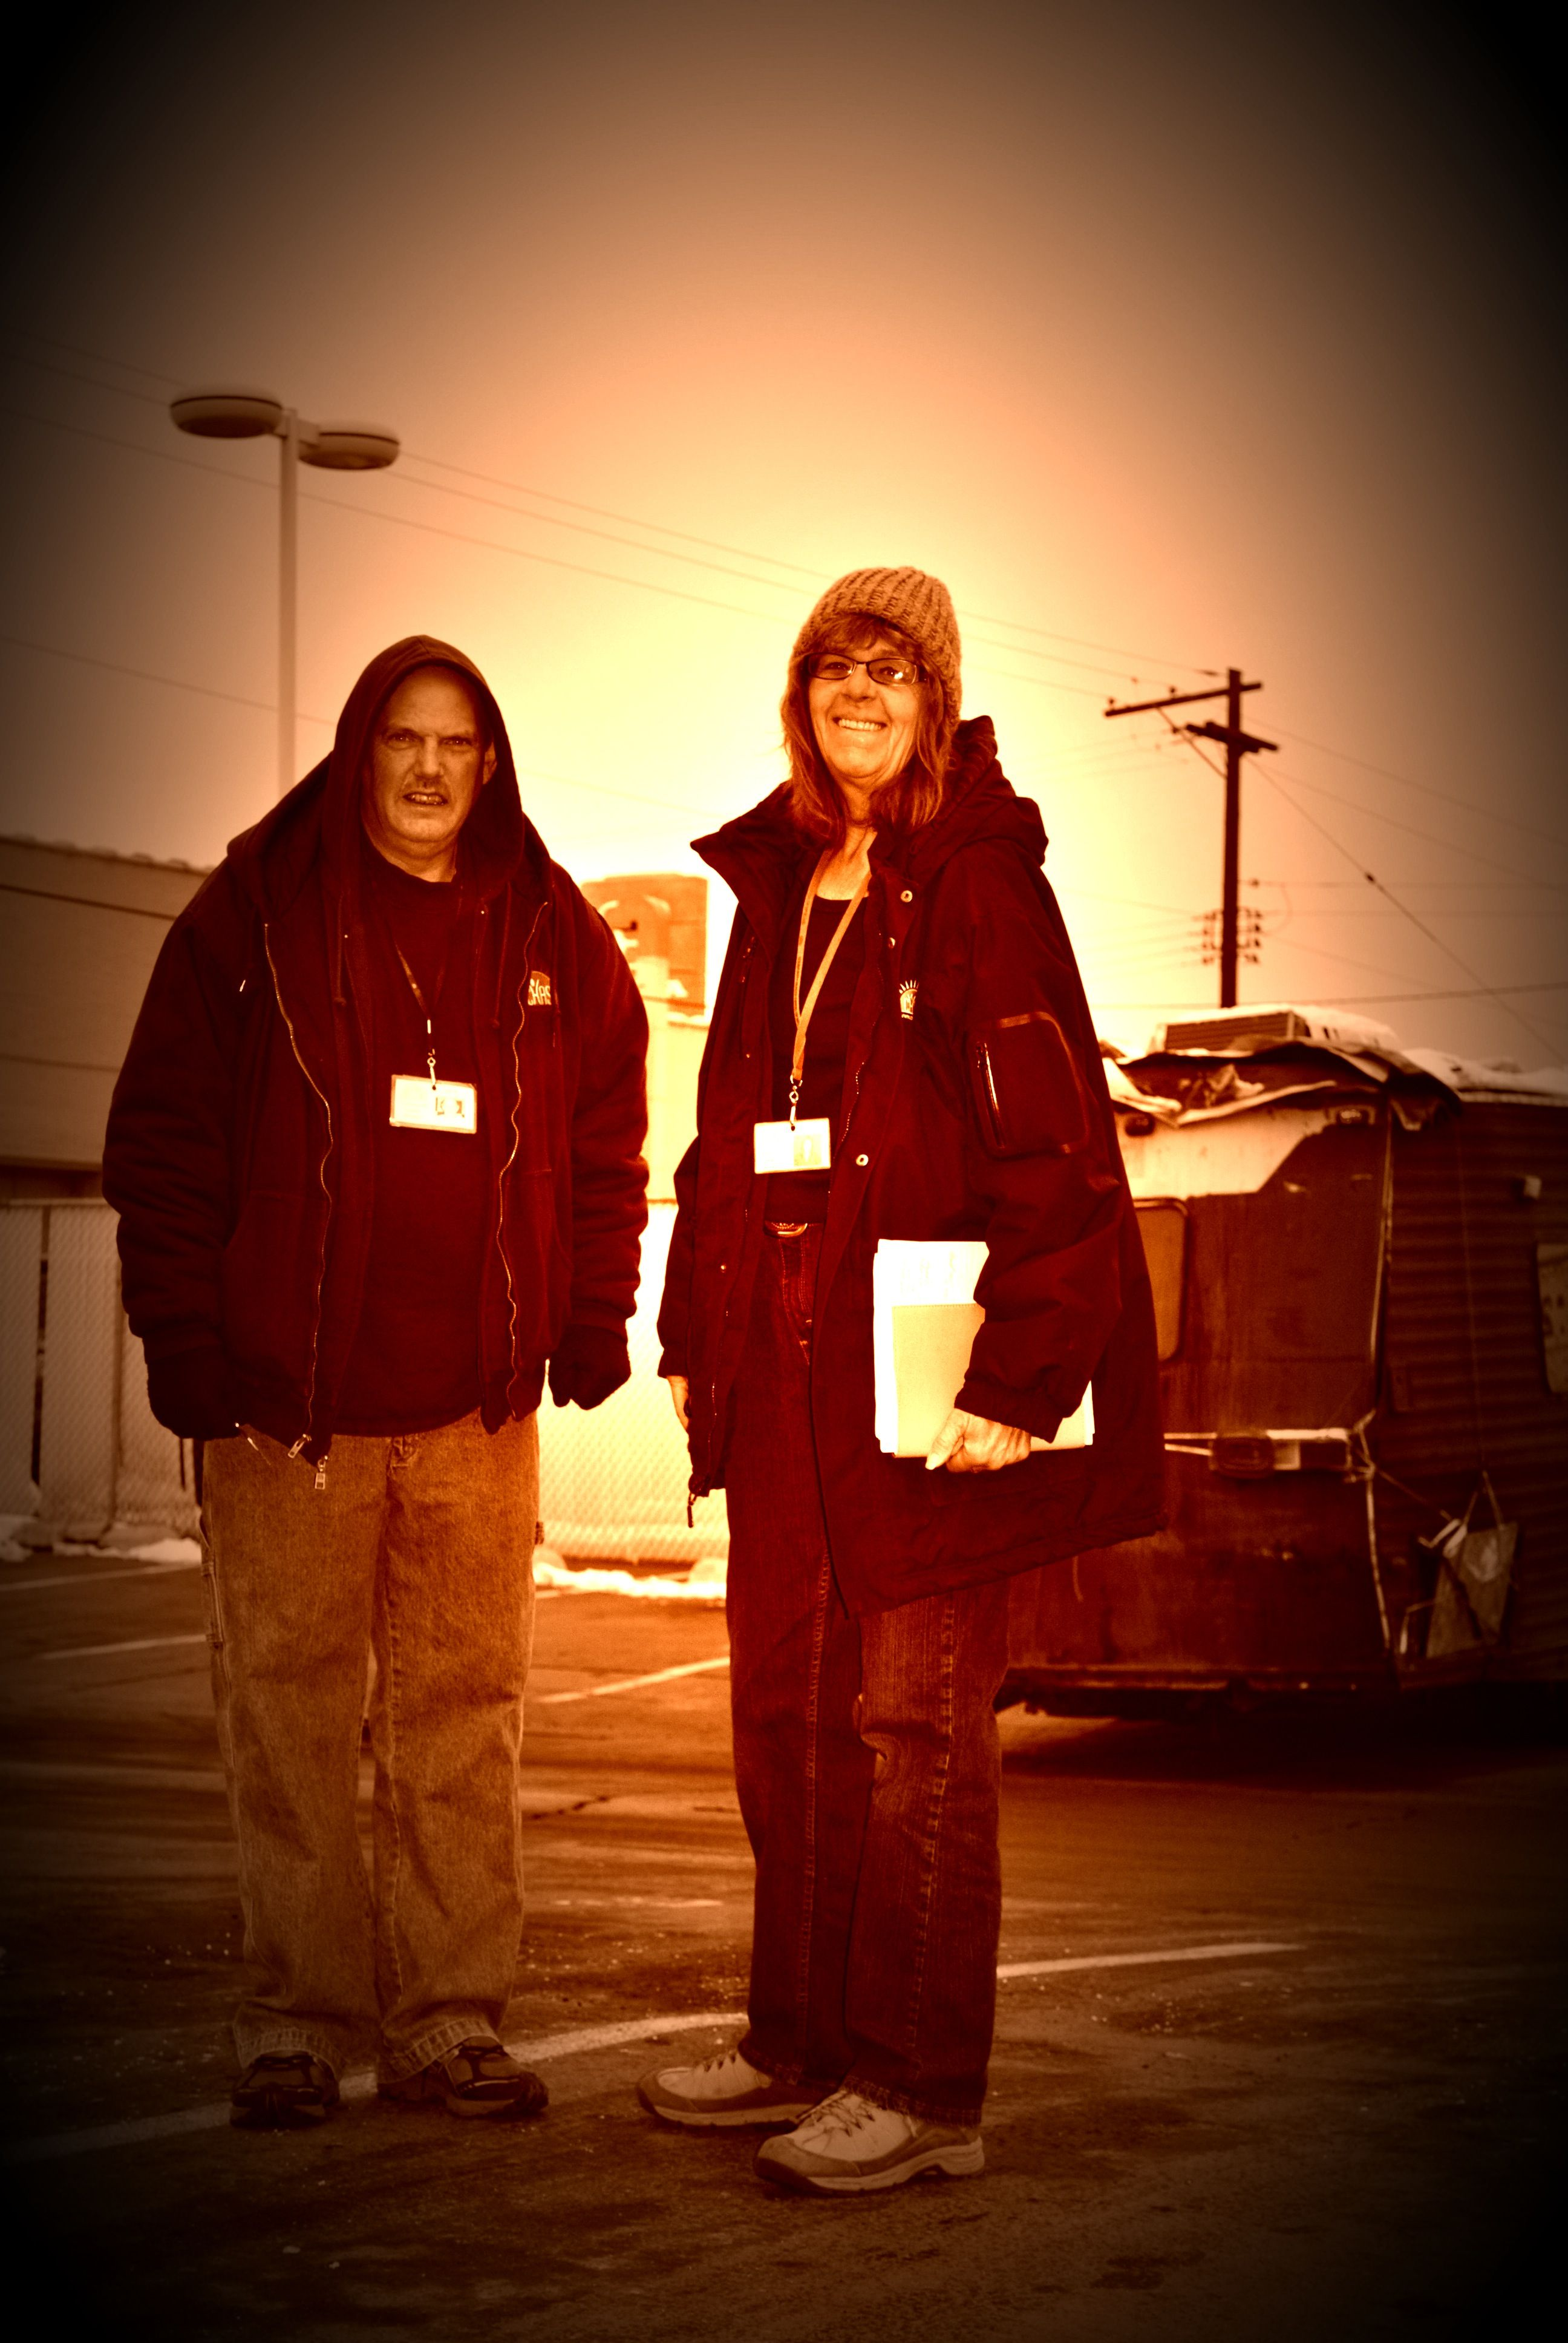 At chas we have a pretty amazing homeless outreach team